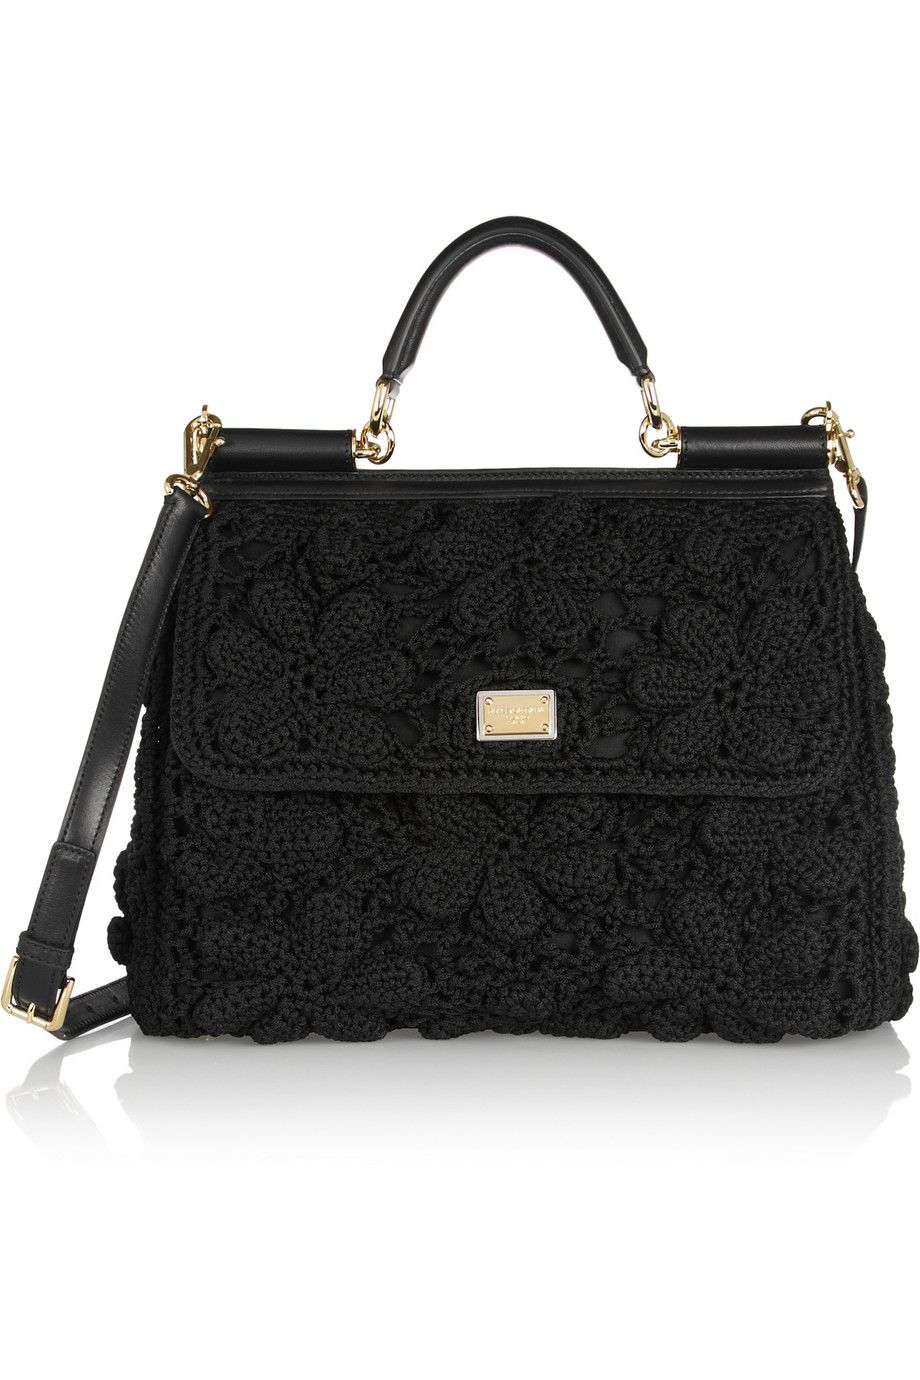 955ad48555c Dolce & Gabbana | Miss Sicily crochet and leather tote | LadyLike ...